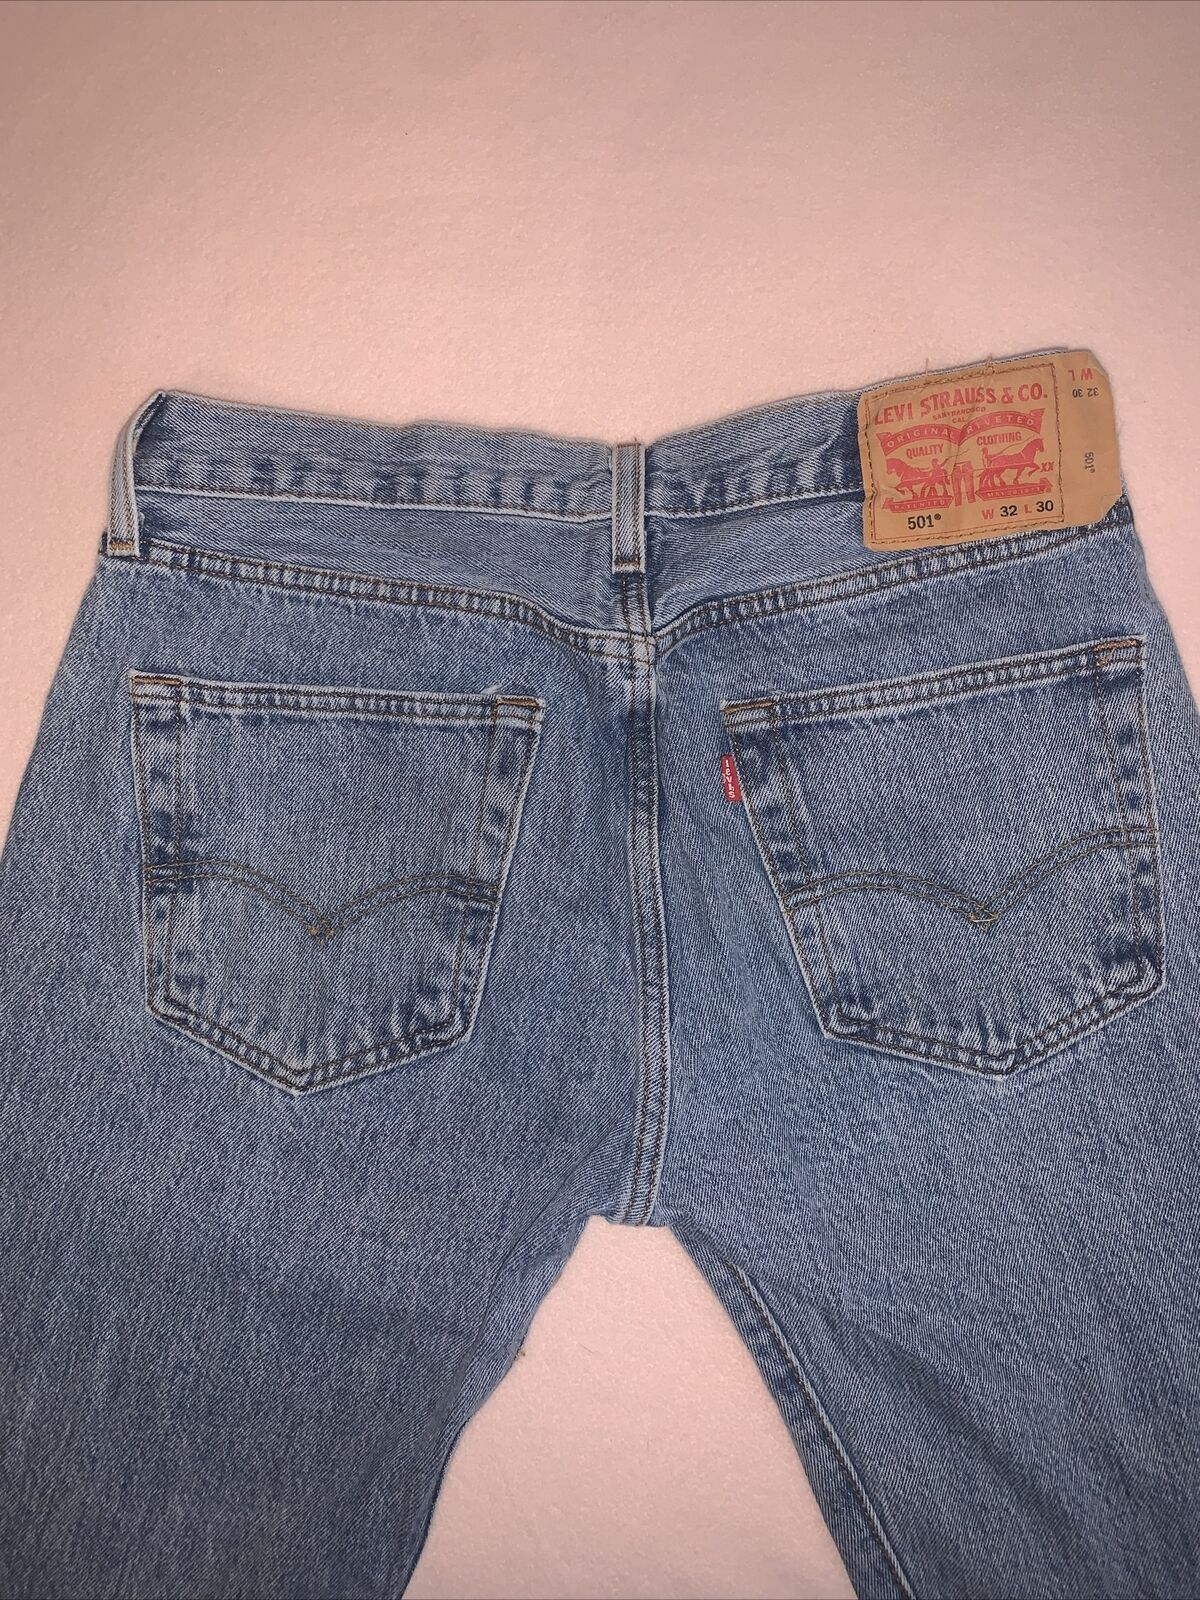 levis 501 made in usa 32x30 - image 1